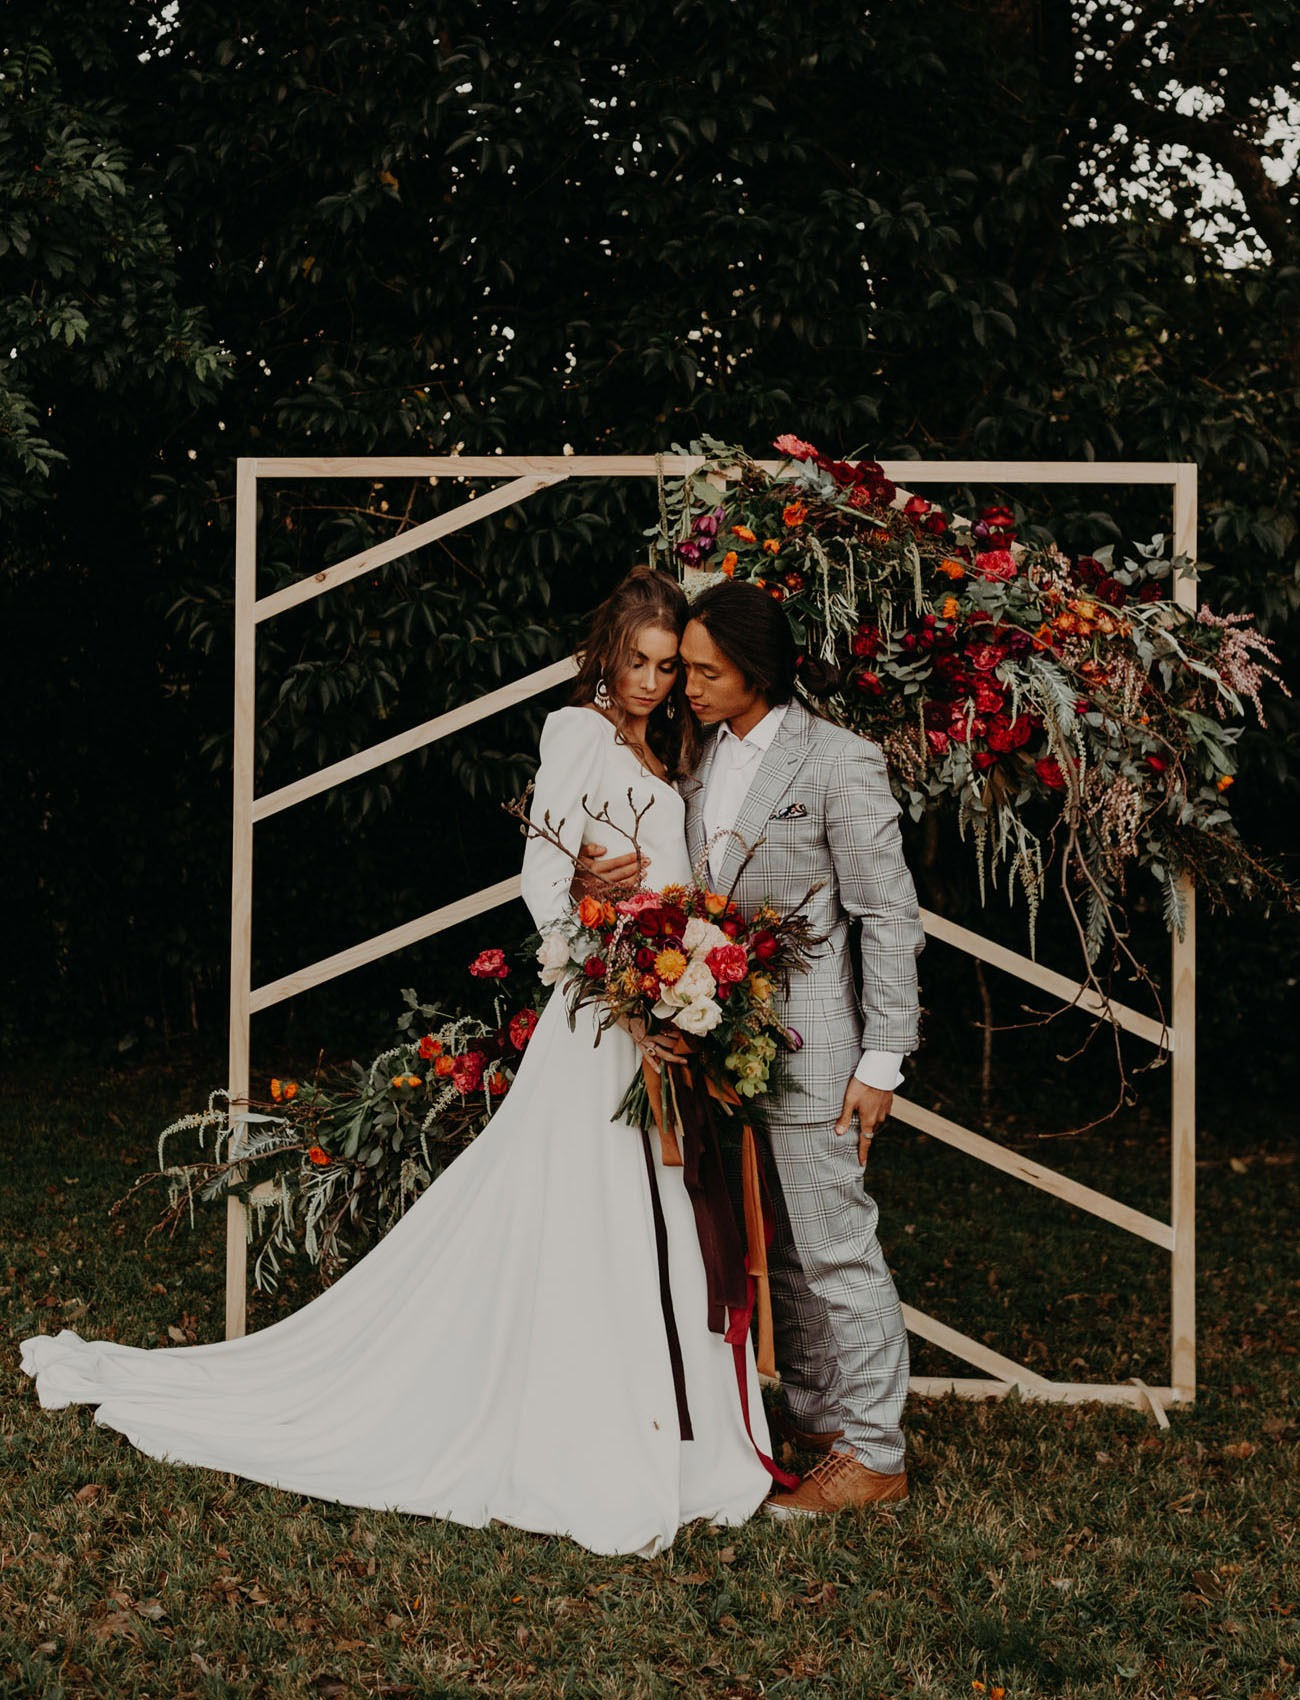 geometric wooden DIY wedding backdrops decorated with flowers